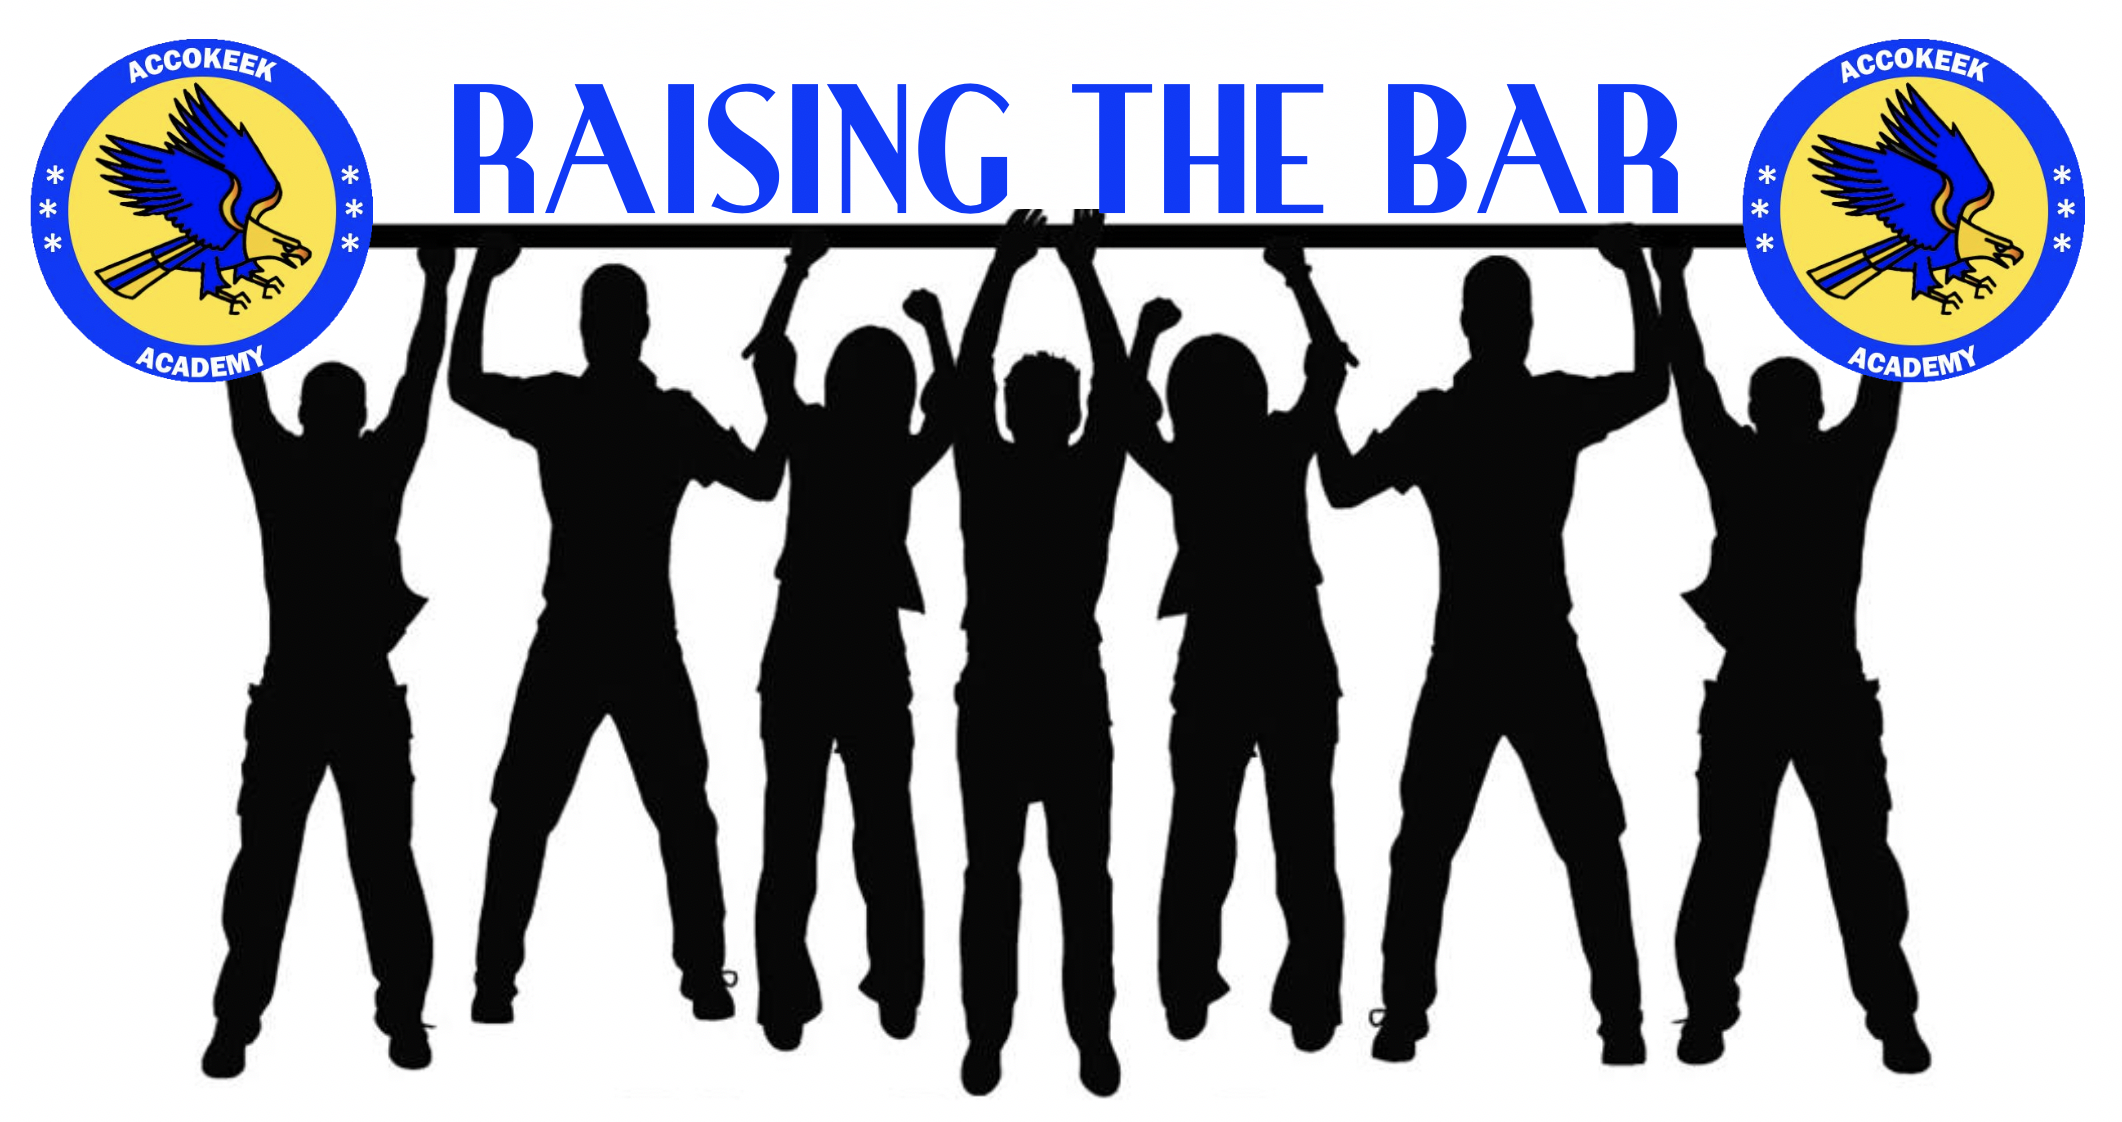 Raising The Bar Accokeek Academy